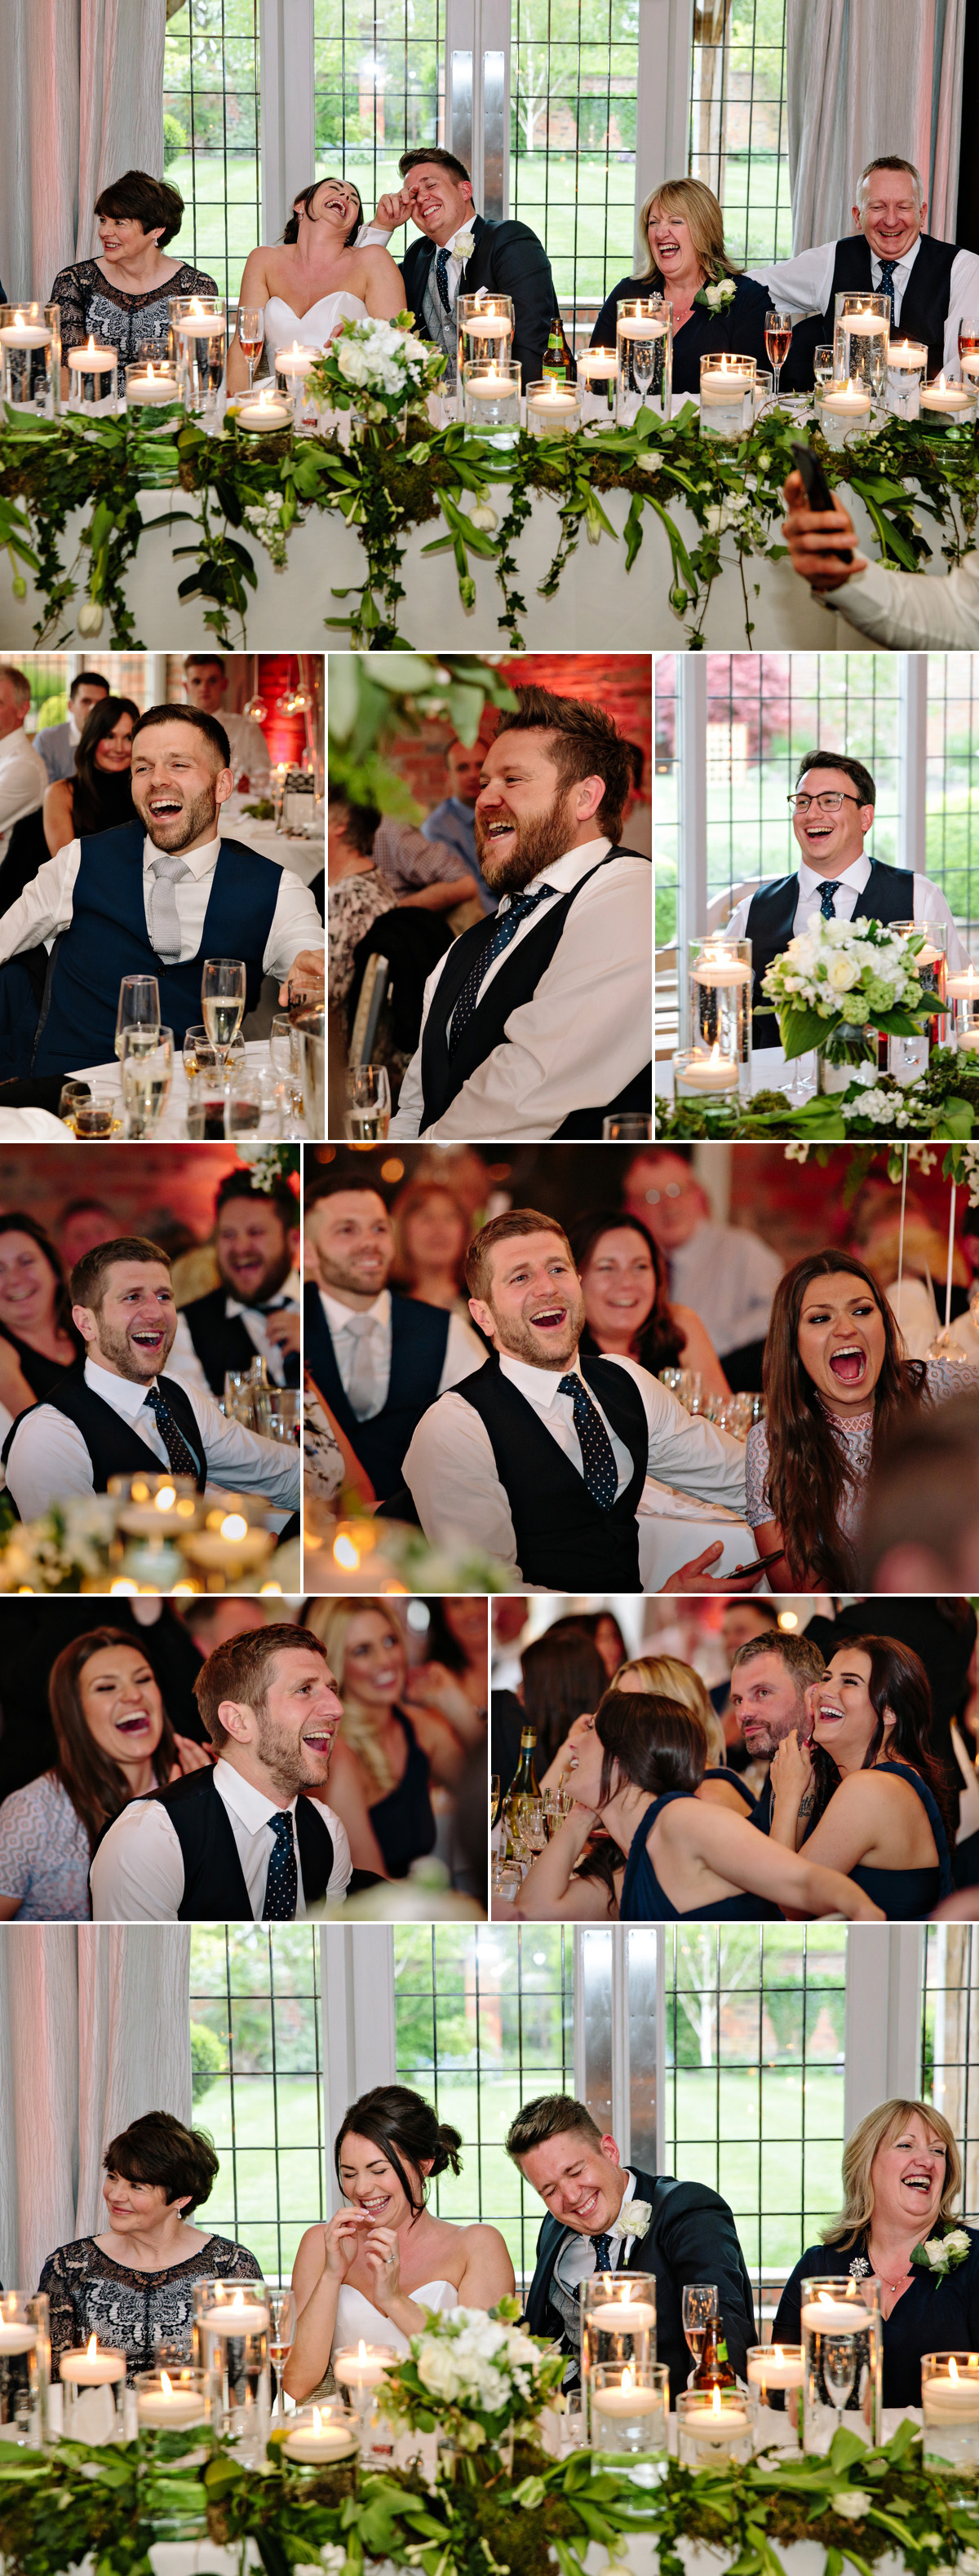 The Best Man's speech has the Bride and Groom and wedding guests laughing loudly